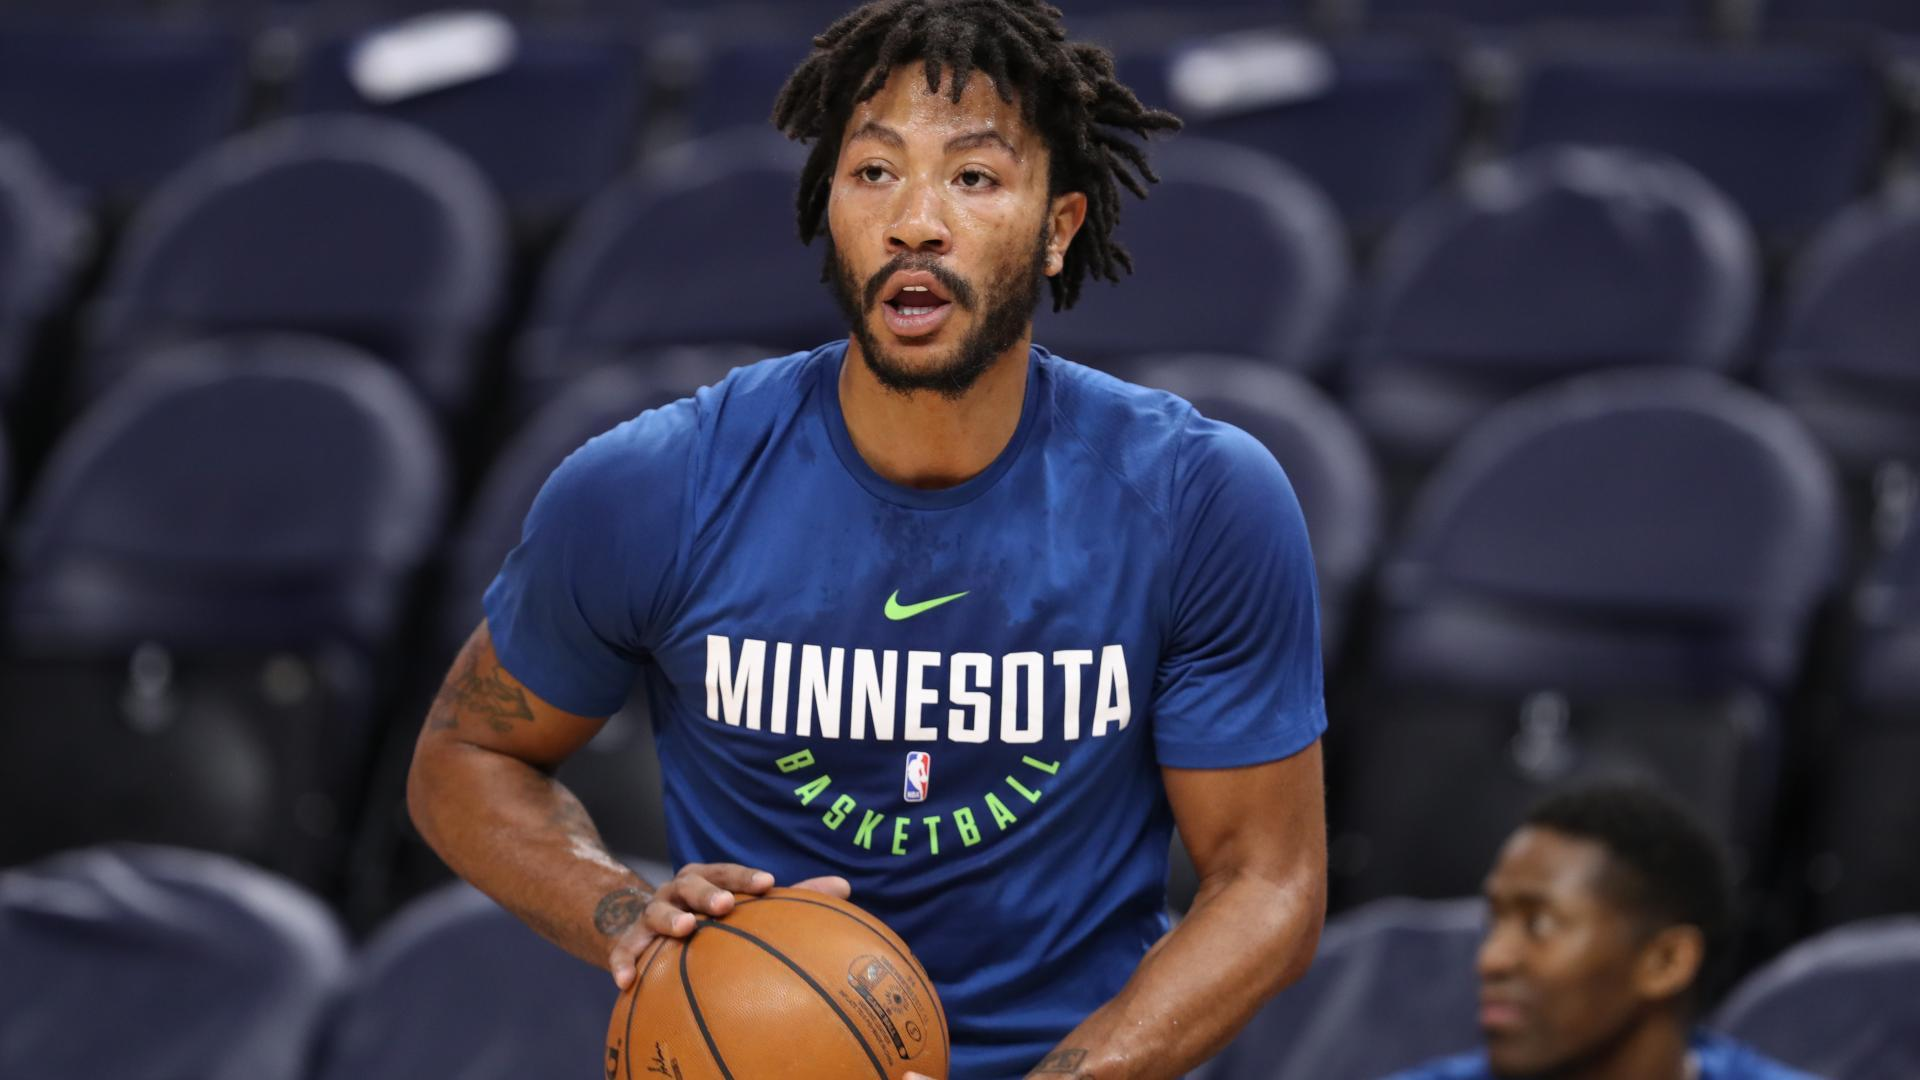 7b57e651c540 Derrick Rose blocks out doubters as he starts new journey in ...